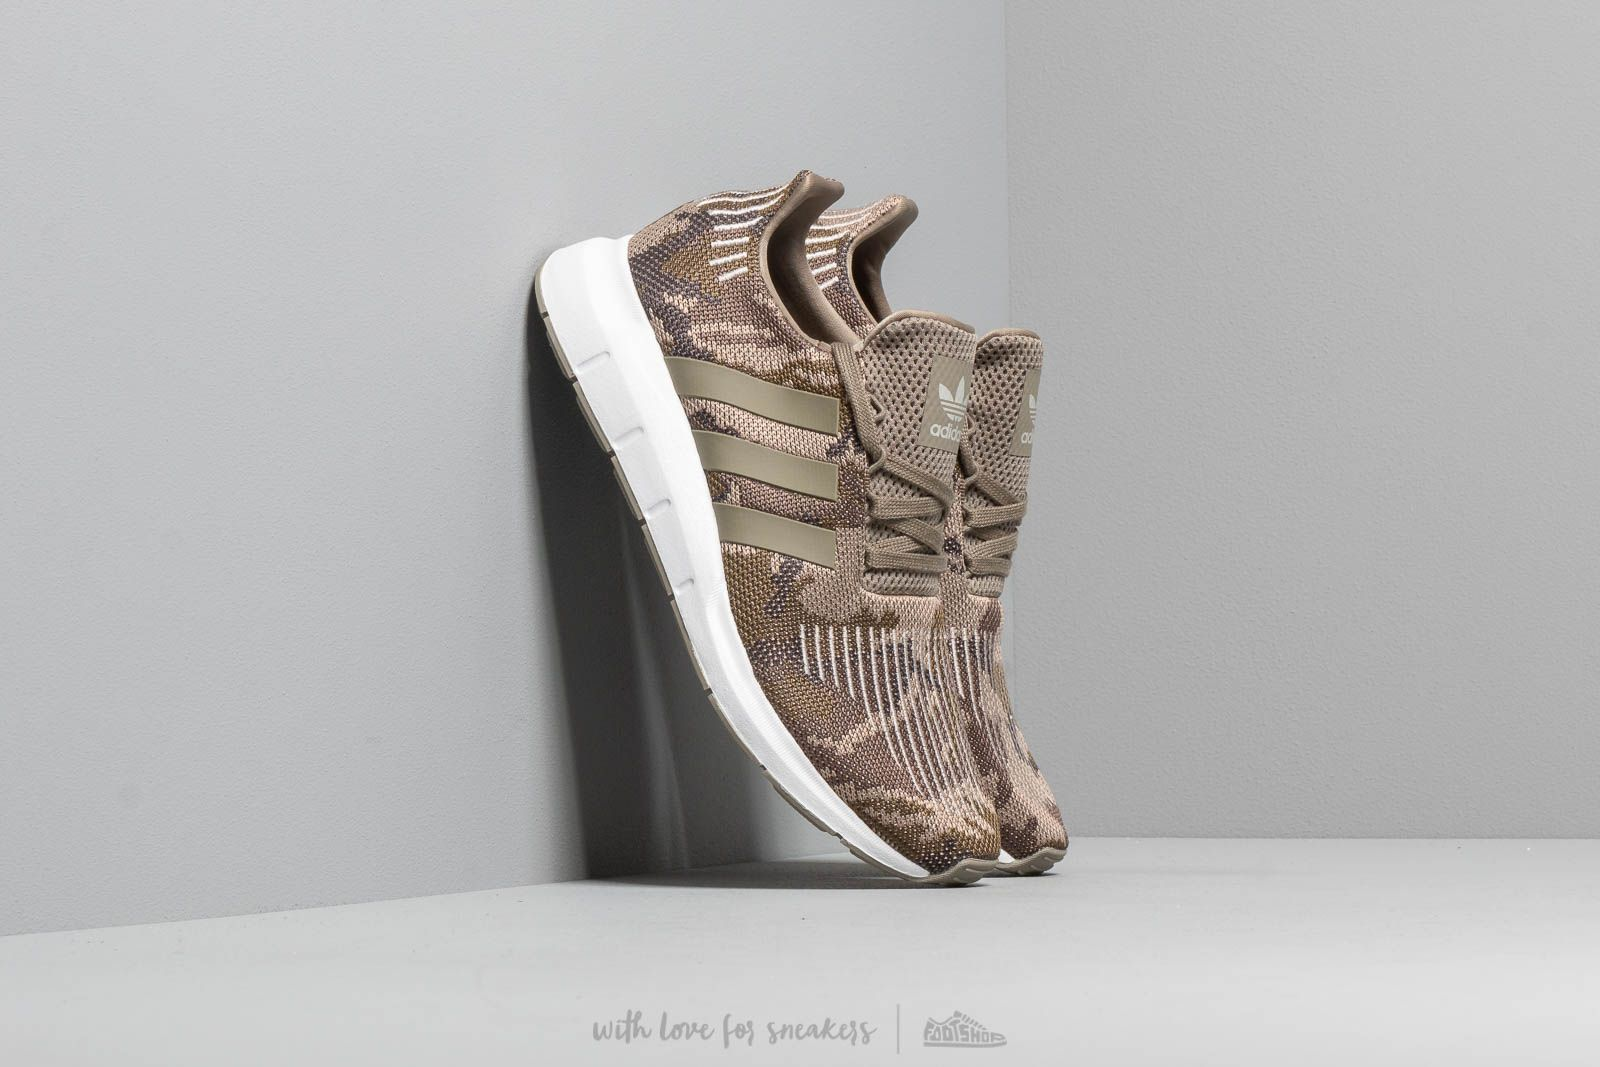 adidas Swift Run Trace Cargo/ Trace Cargo/ Ftw White at a great price 2 738 ГРН купите на Footshop.ua